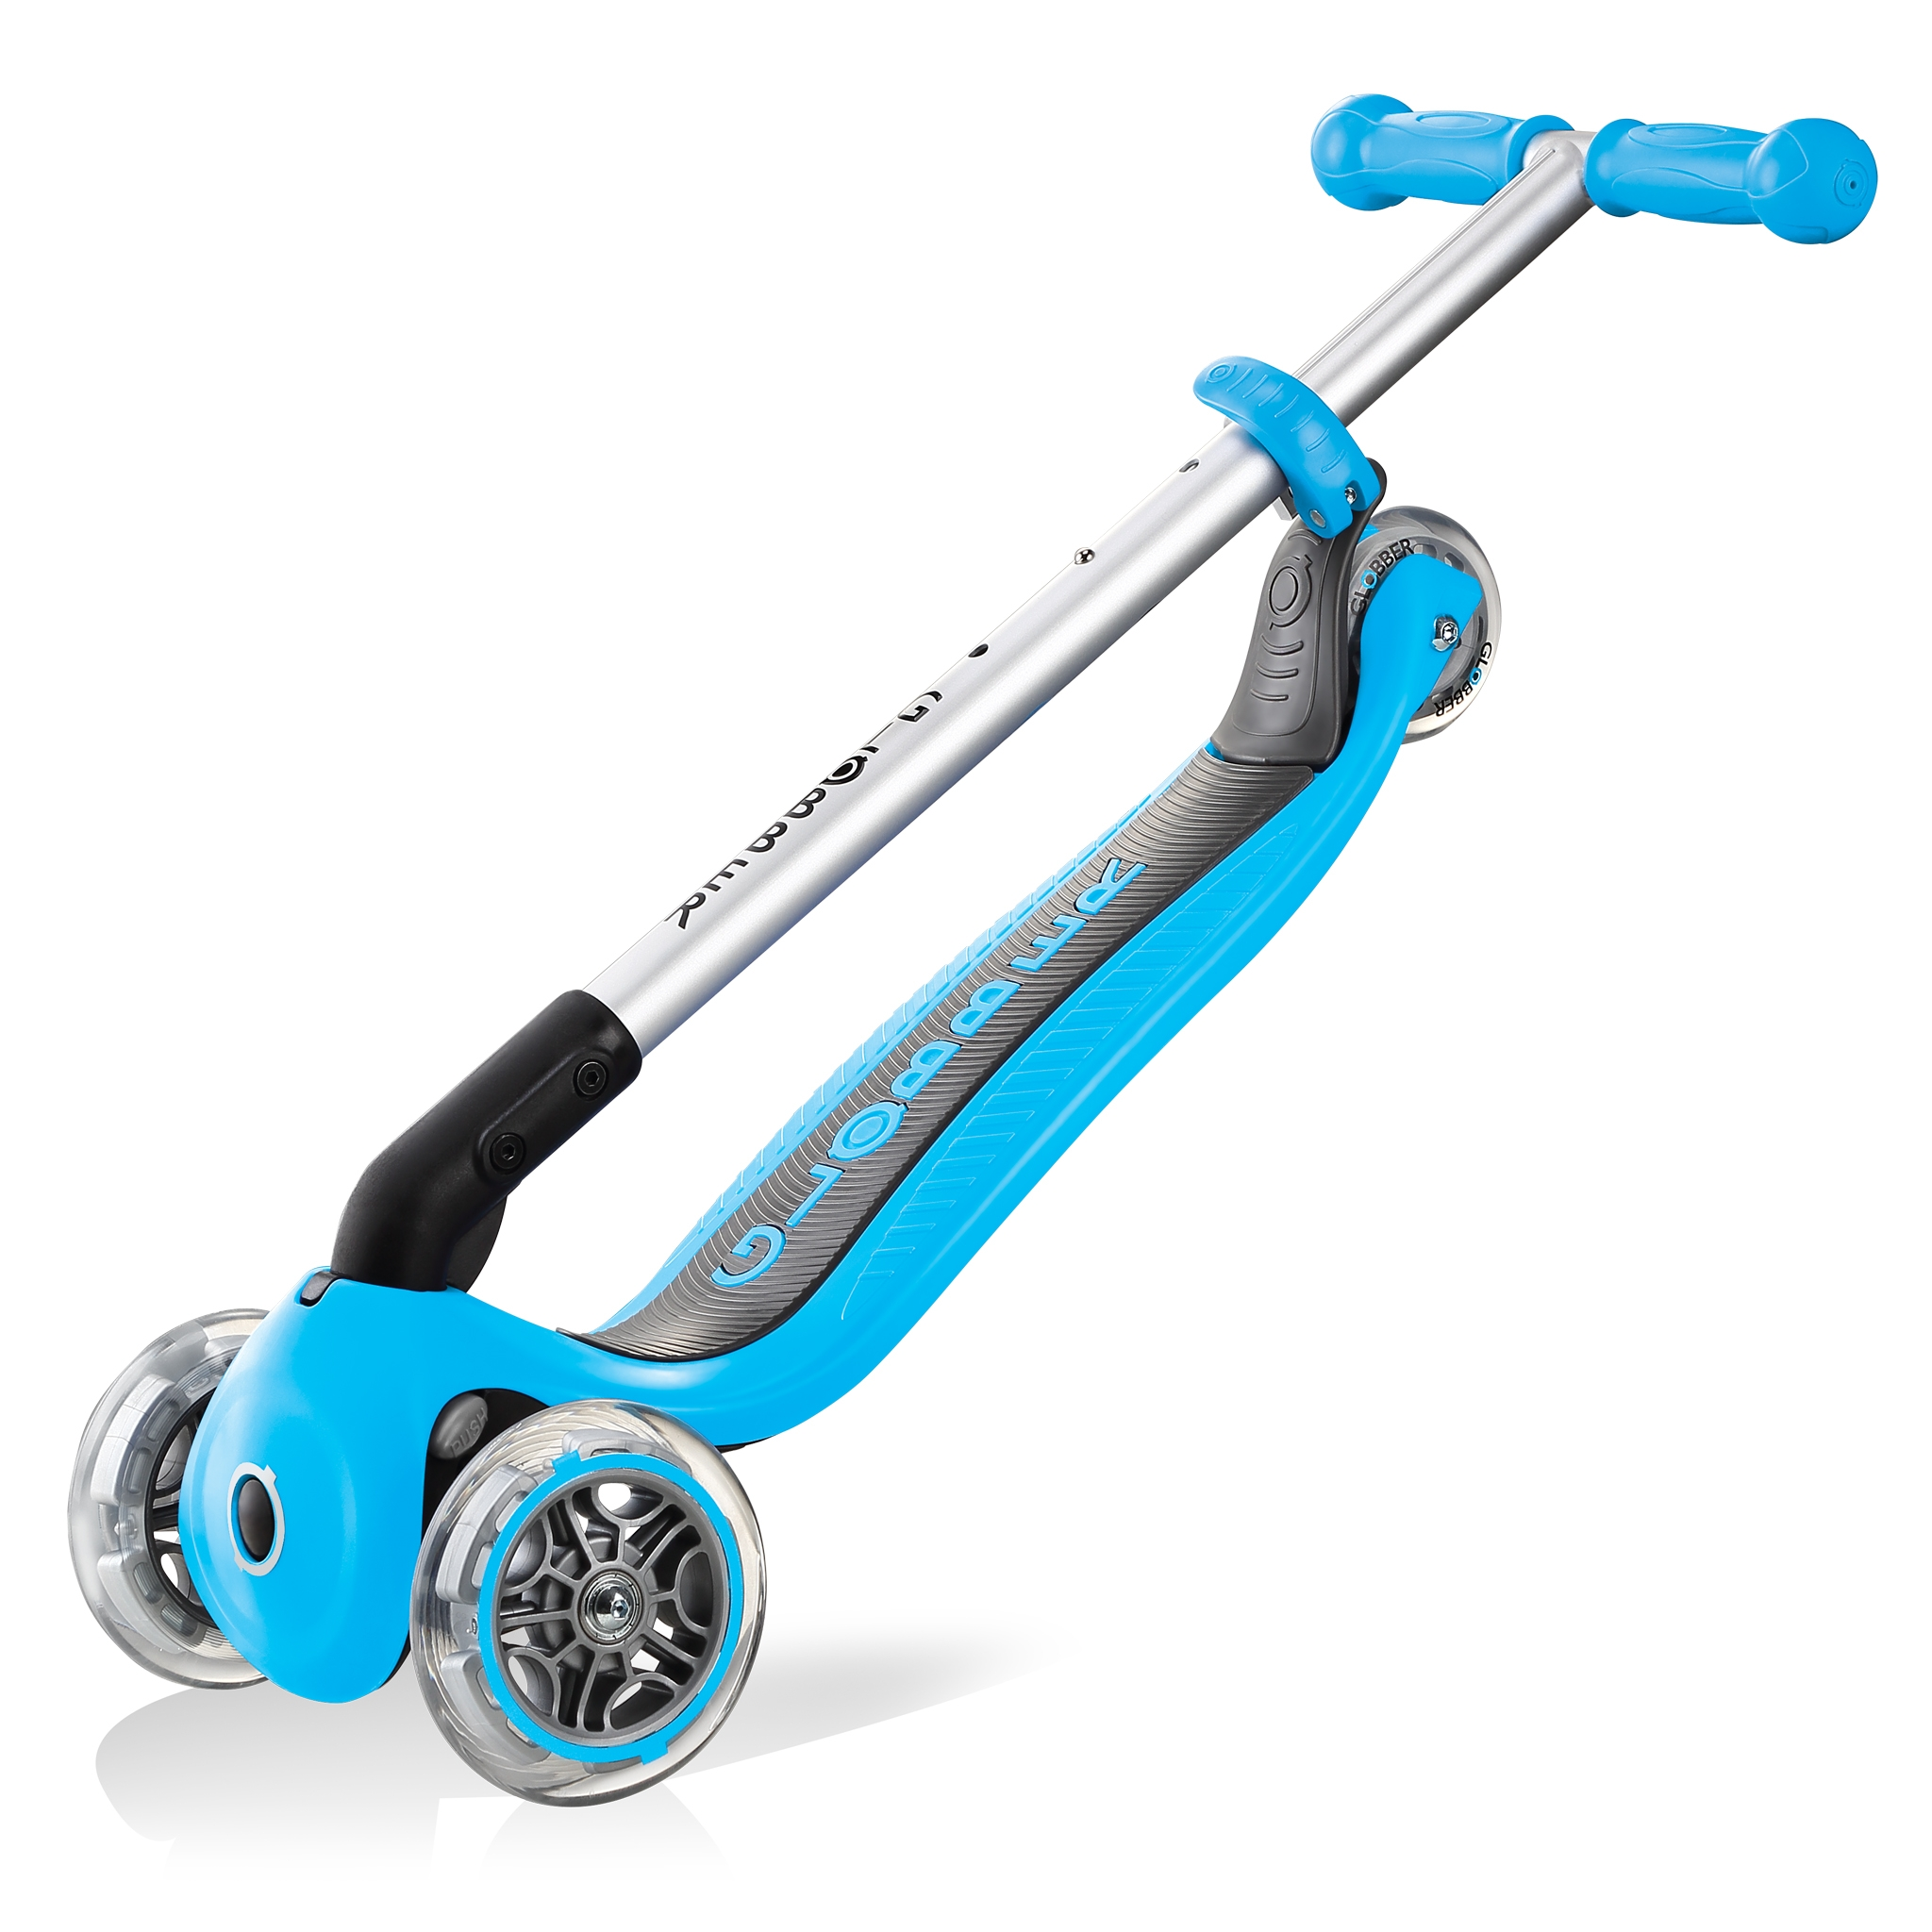 PRIMO-FOLDABLE-3-wheel-foldable-scooter-for-kids-trolley-mode-sky-blue